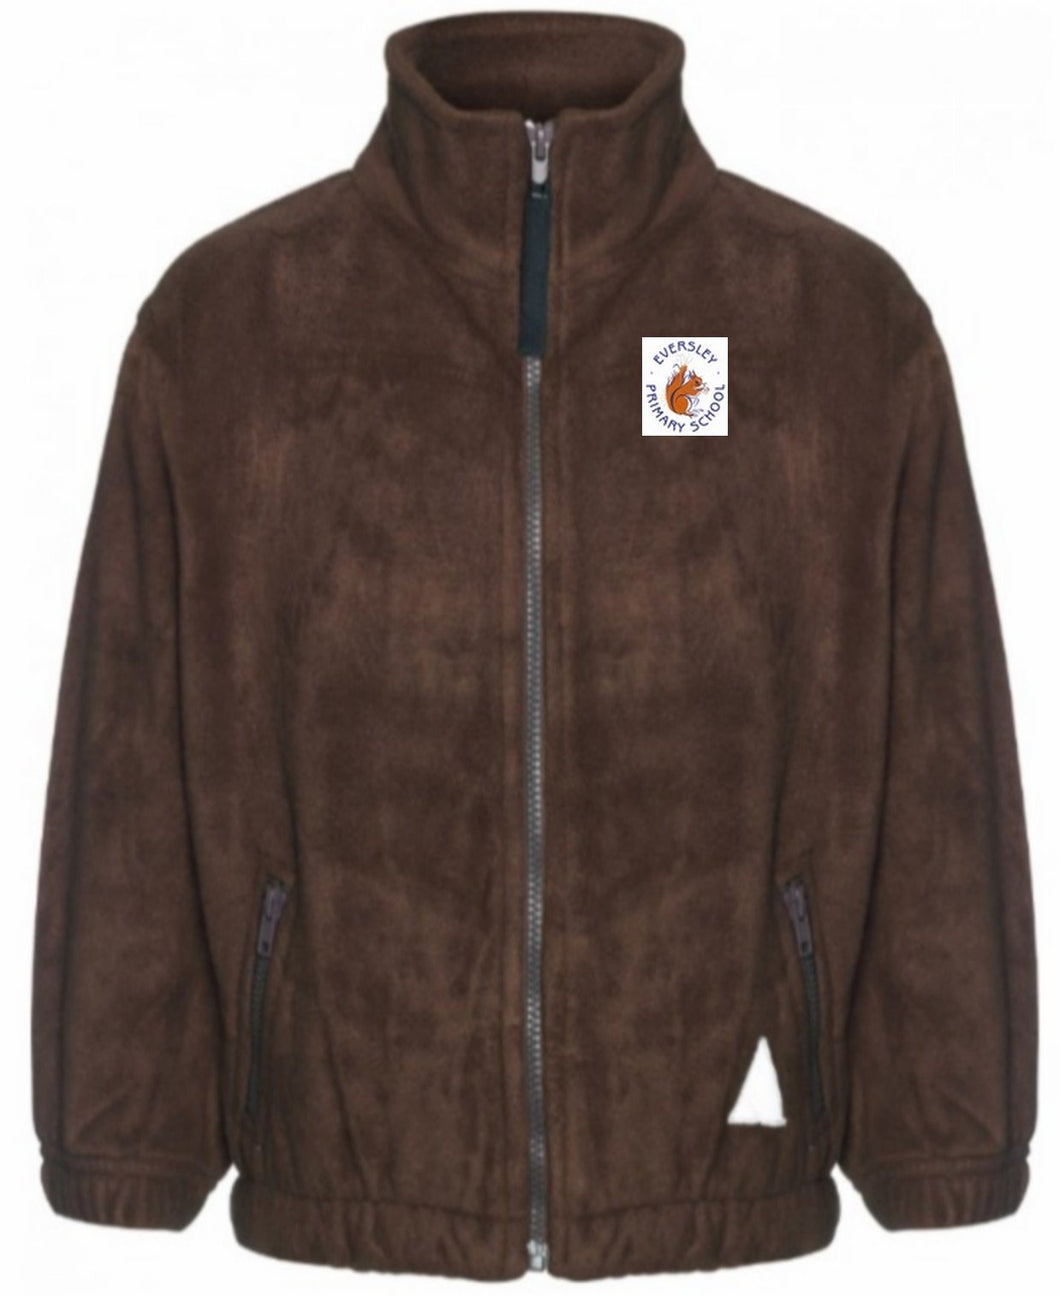 Eversley Primary School - Brown Fleece Jacket with School Logo - Schoolwear Centres | School Uniform Centres